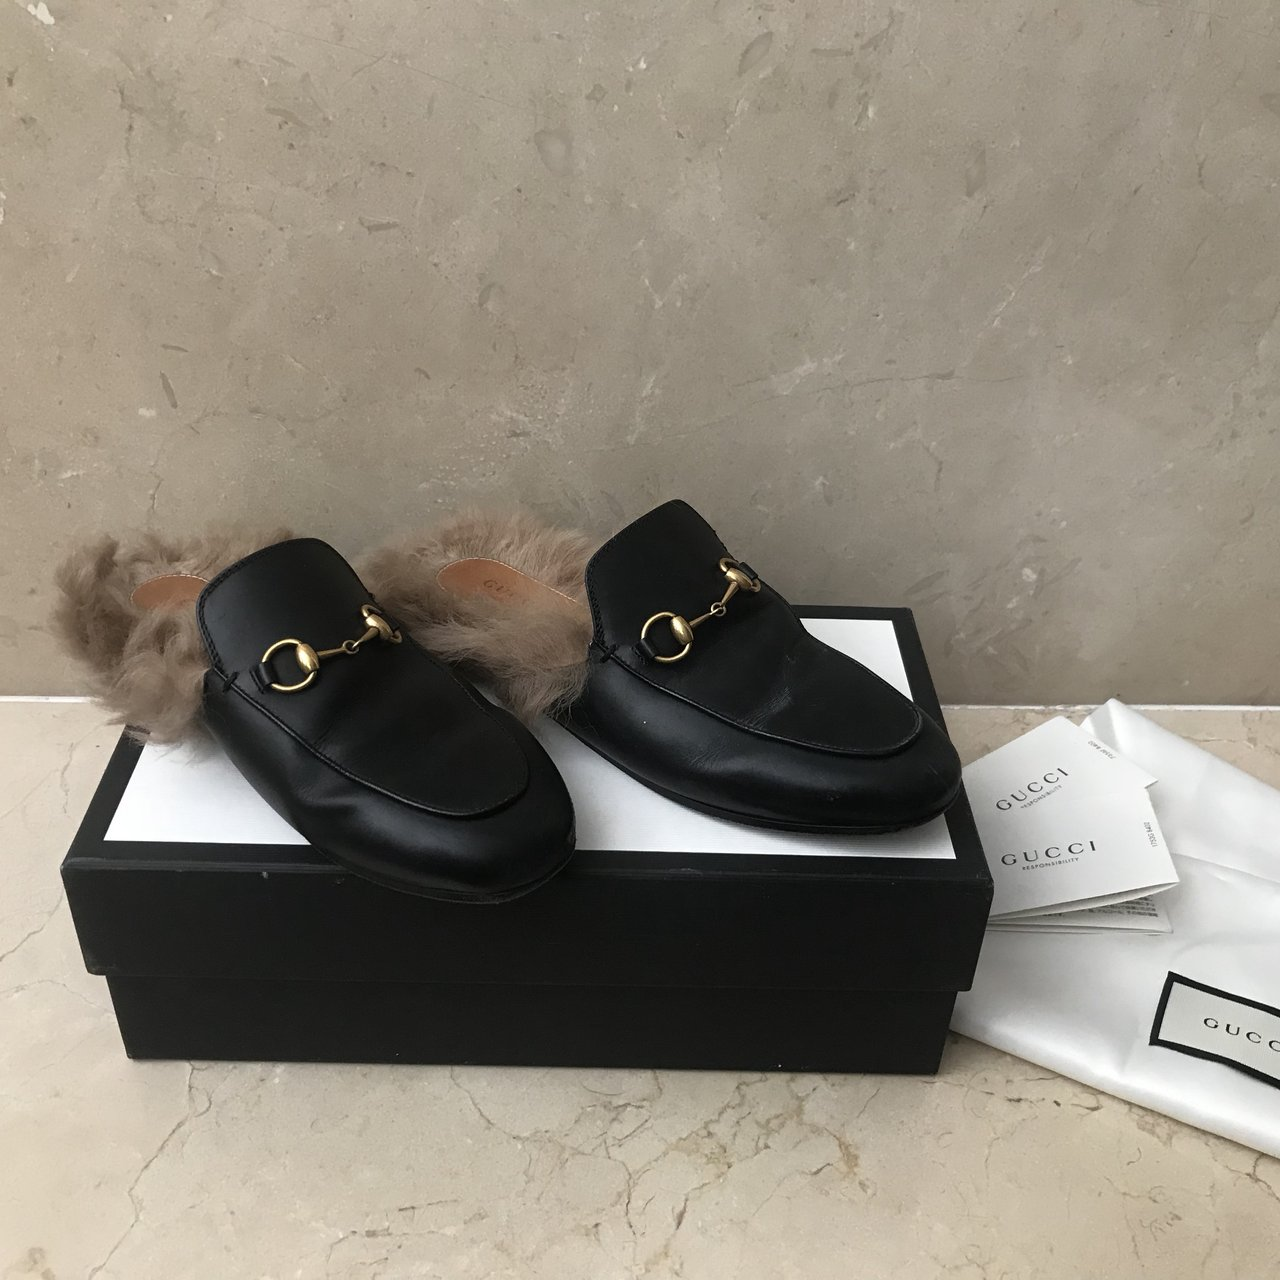 5b9d70d3223e Women s Gucci fur loafers Rare iconic shoes! Beautiful with - Depop